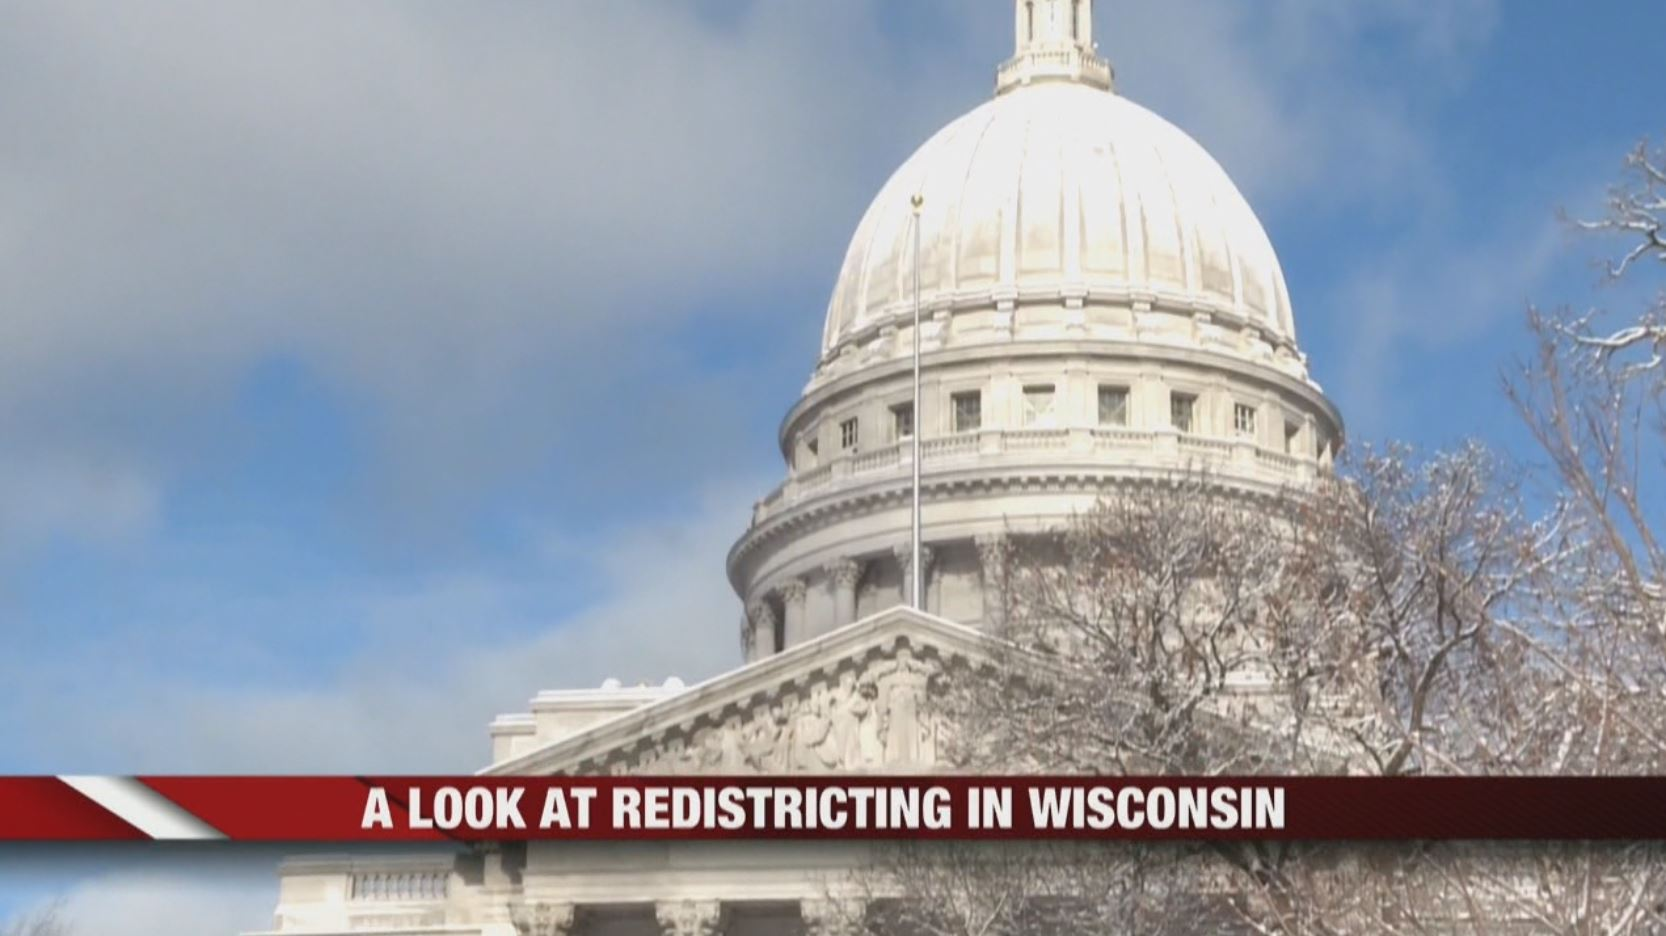 A look at redistricting in Wisconsin